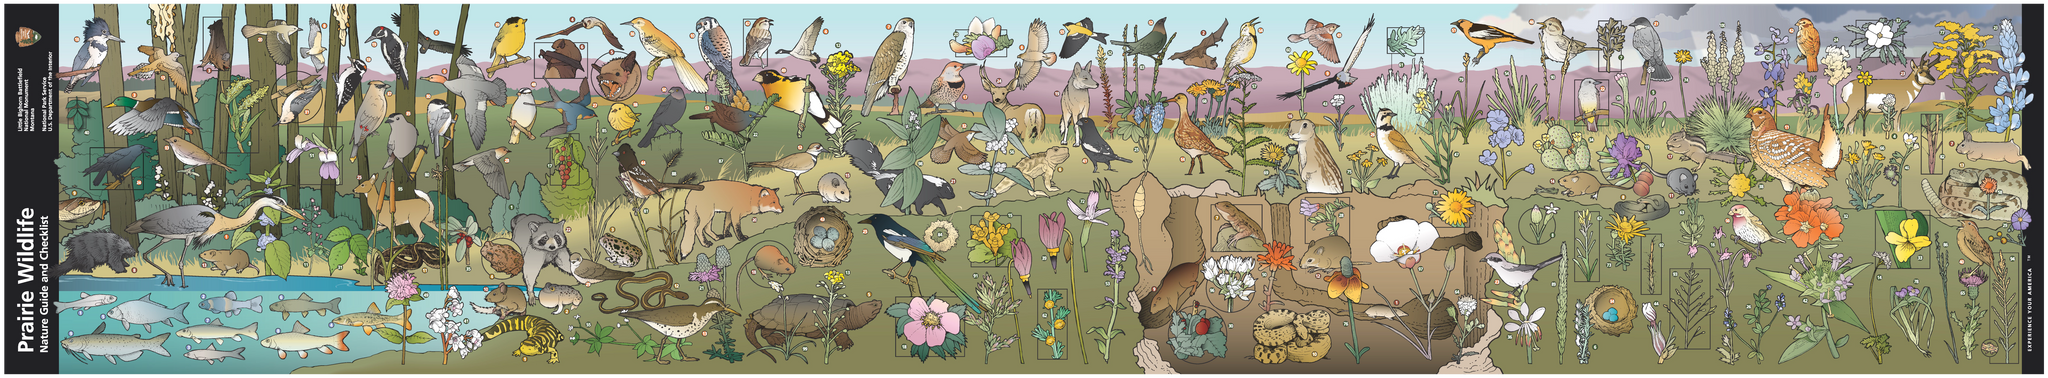 Full brochure artwork of Little Big Horn Prairie Nature Guide